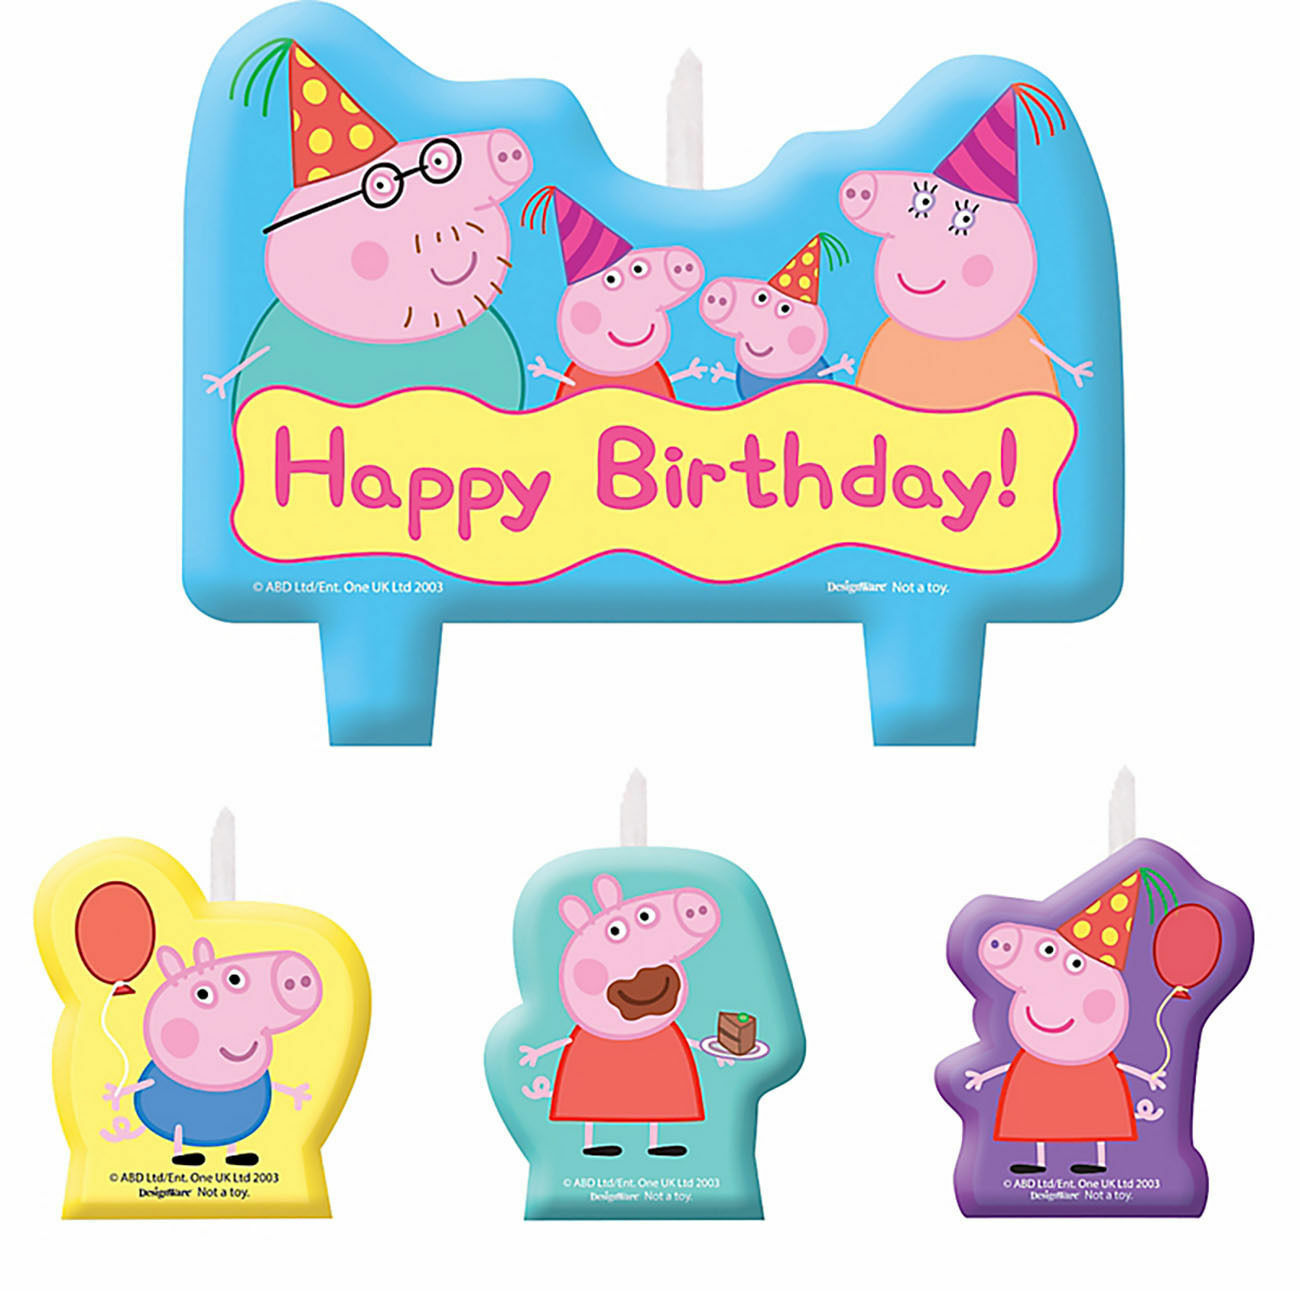 Details About New Peppa Pig Birthday Party Favors Supplies Candle Set Cake Top Decor 4pc